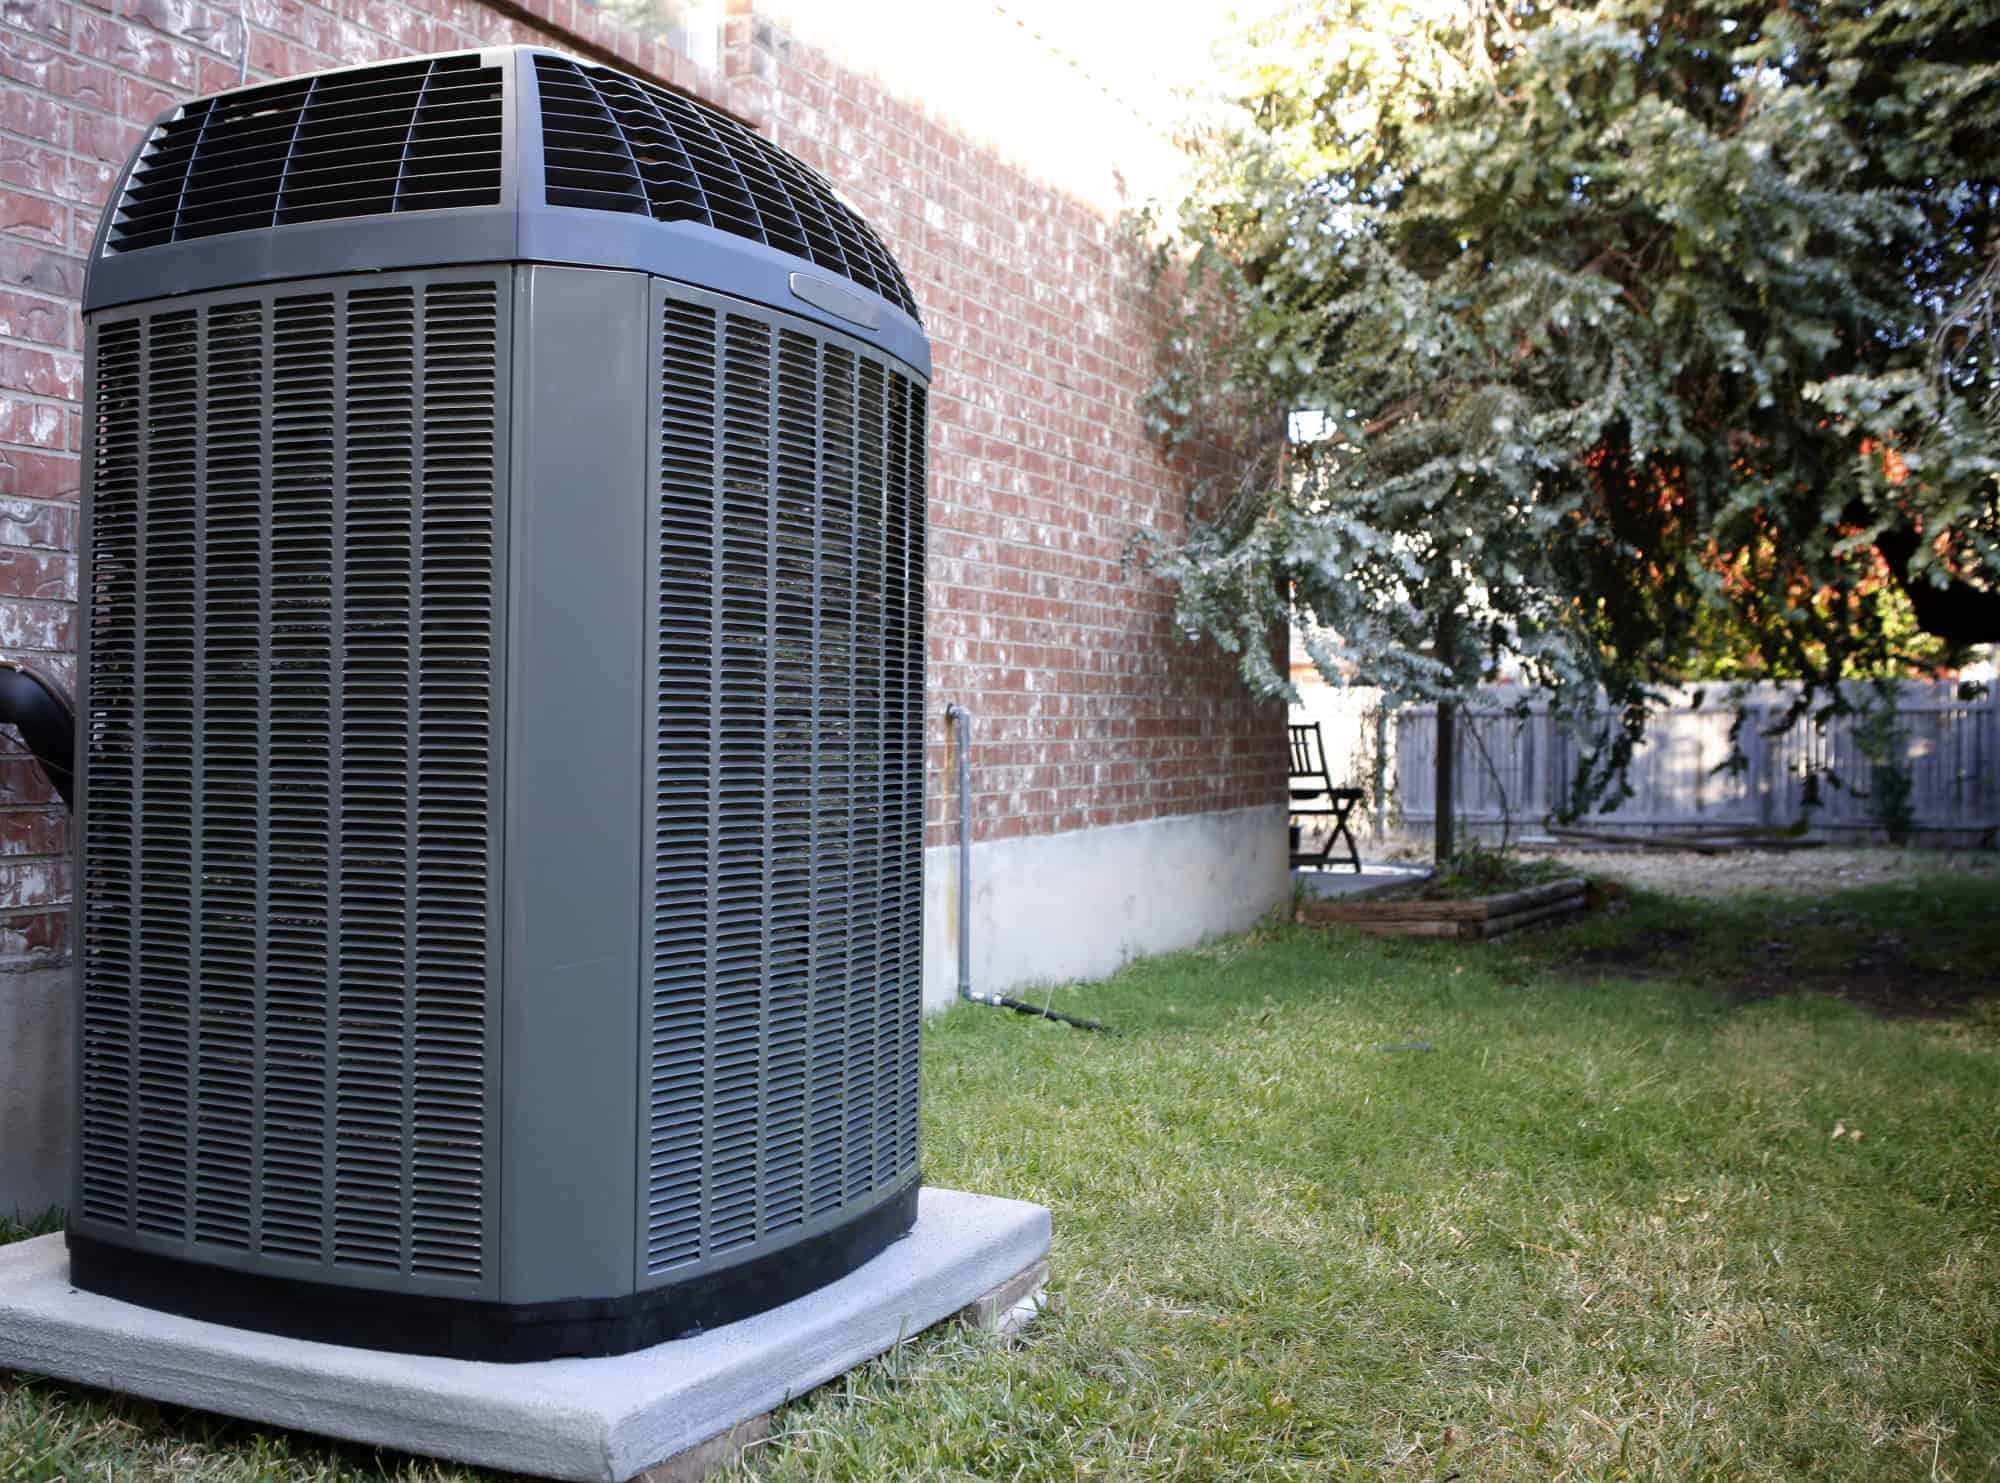 Make A List Check It Twice: AC Unit Checklist To Prevent